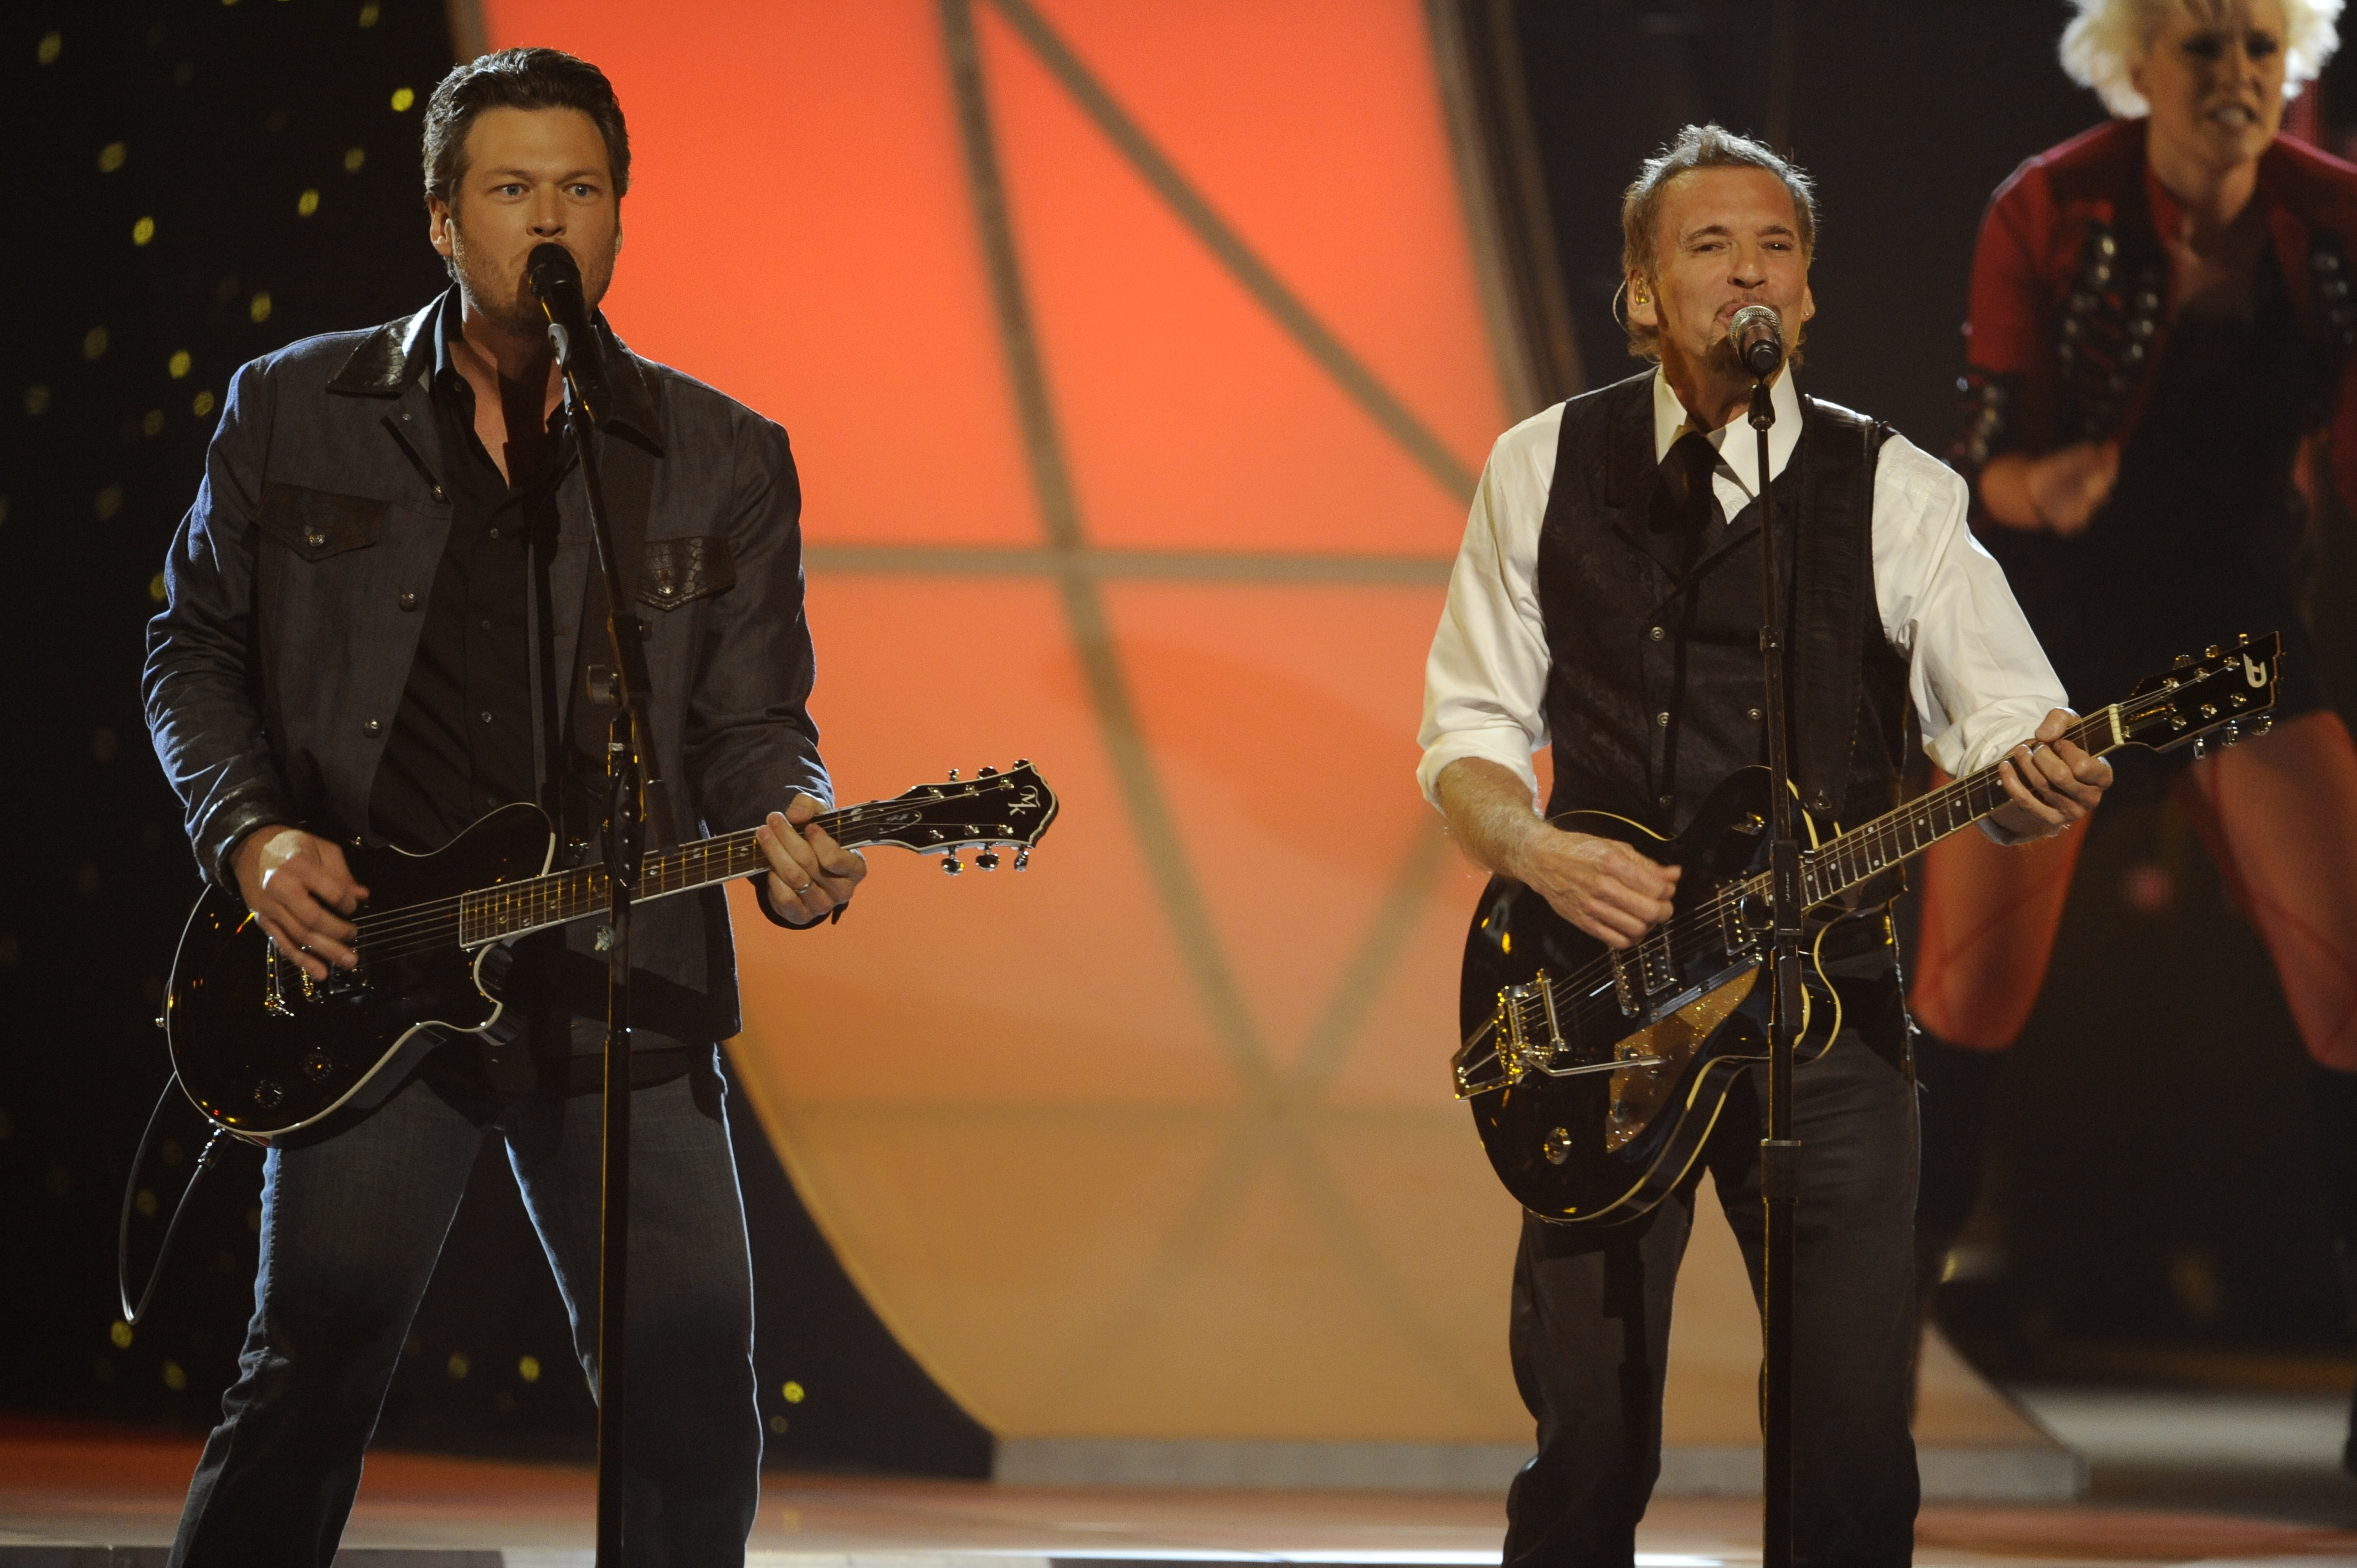 Blake Shelton and Kenny Loggins